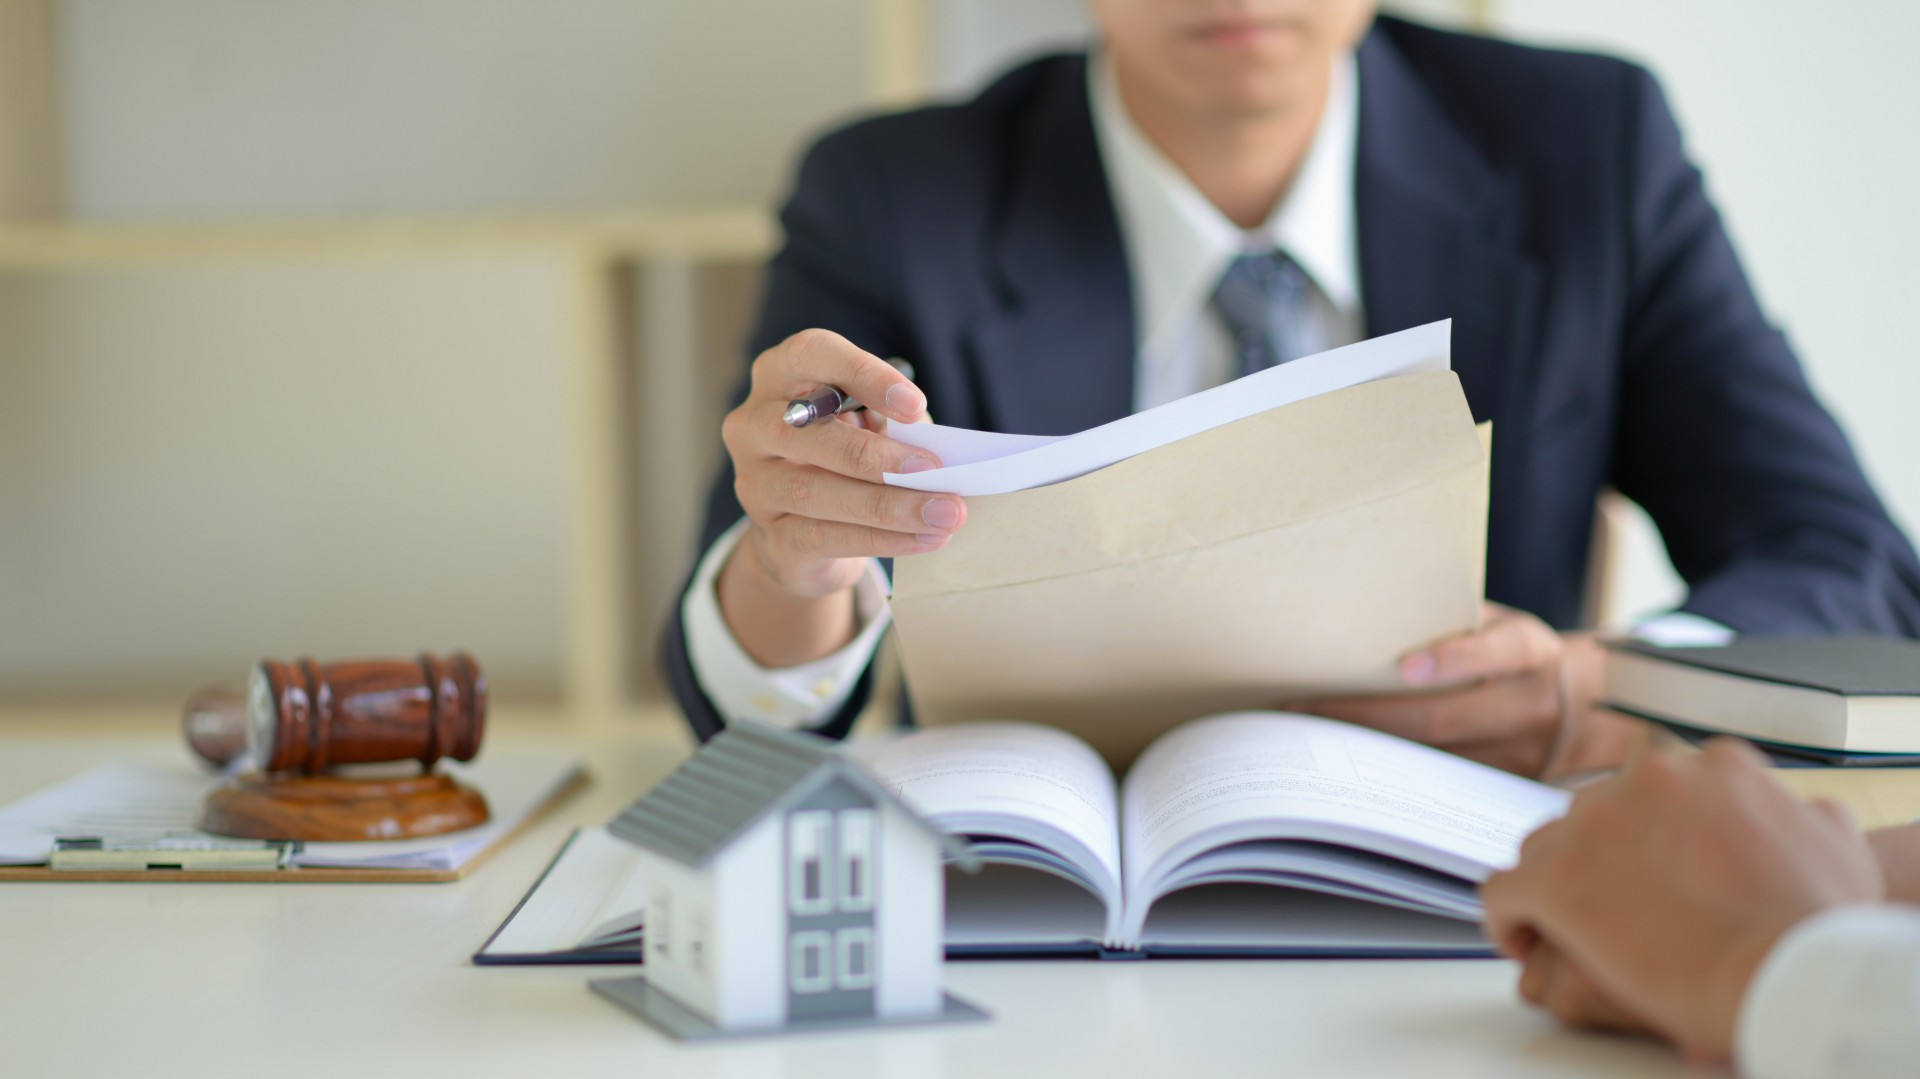 Should You Hire a Real Estate Agent or Lawyer to Buy a House